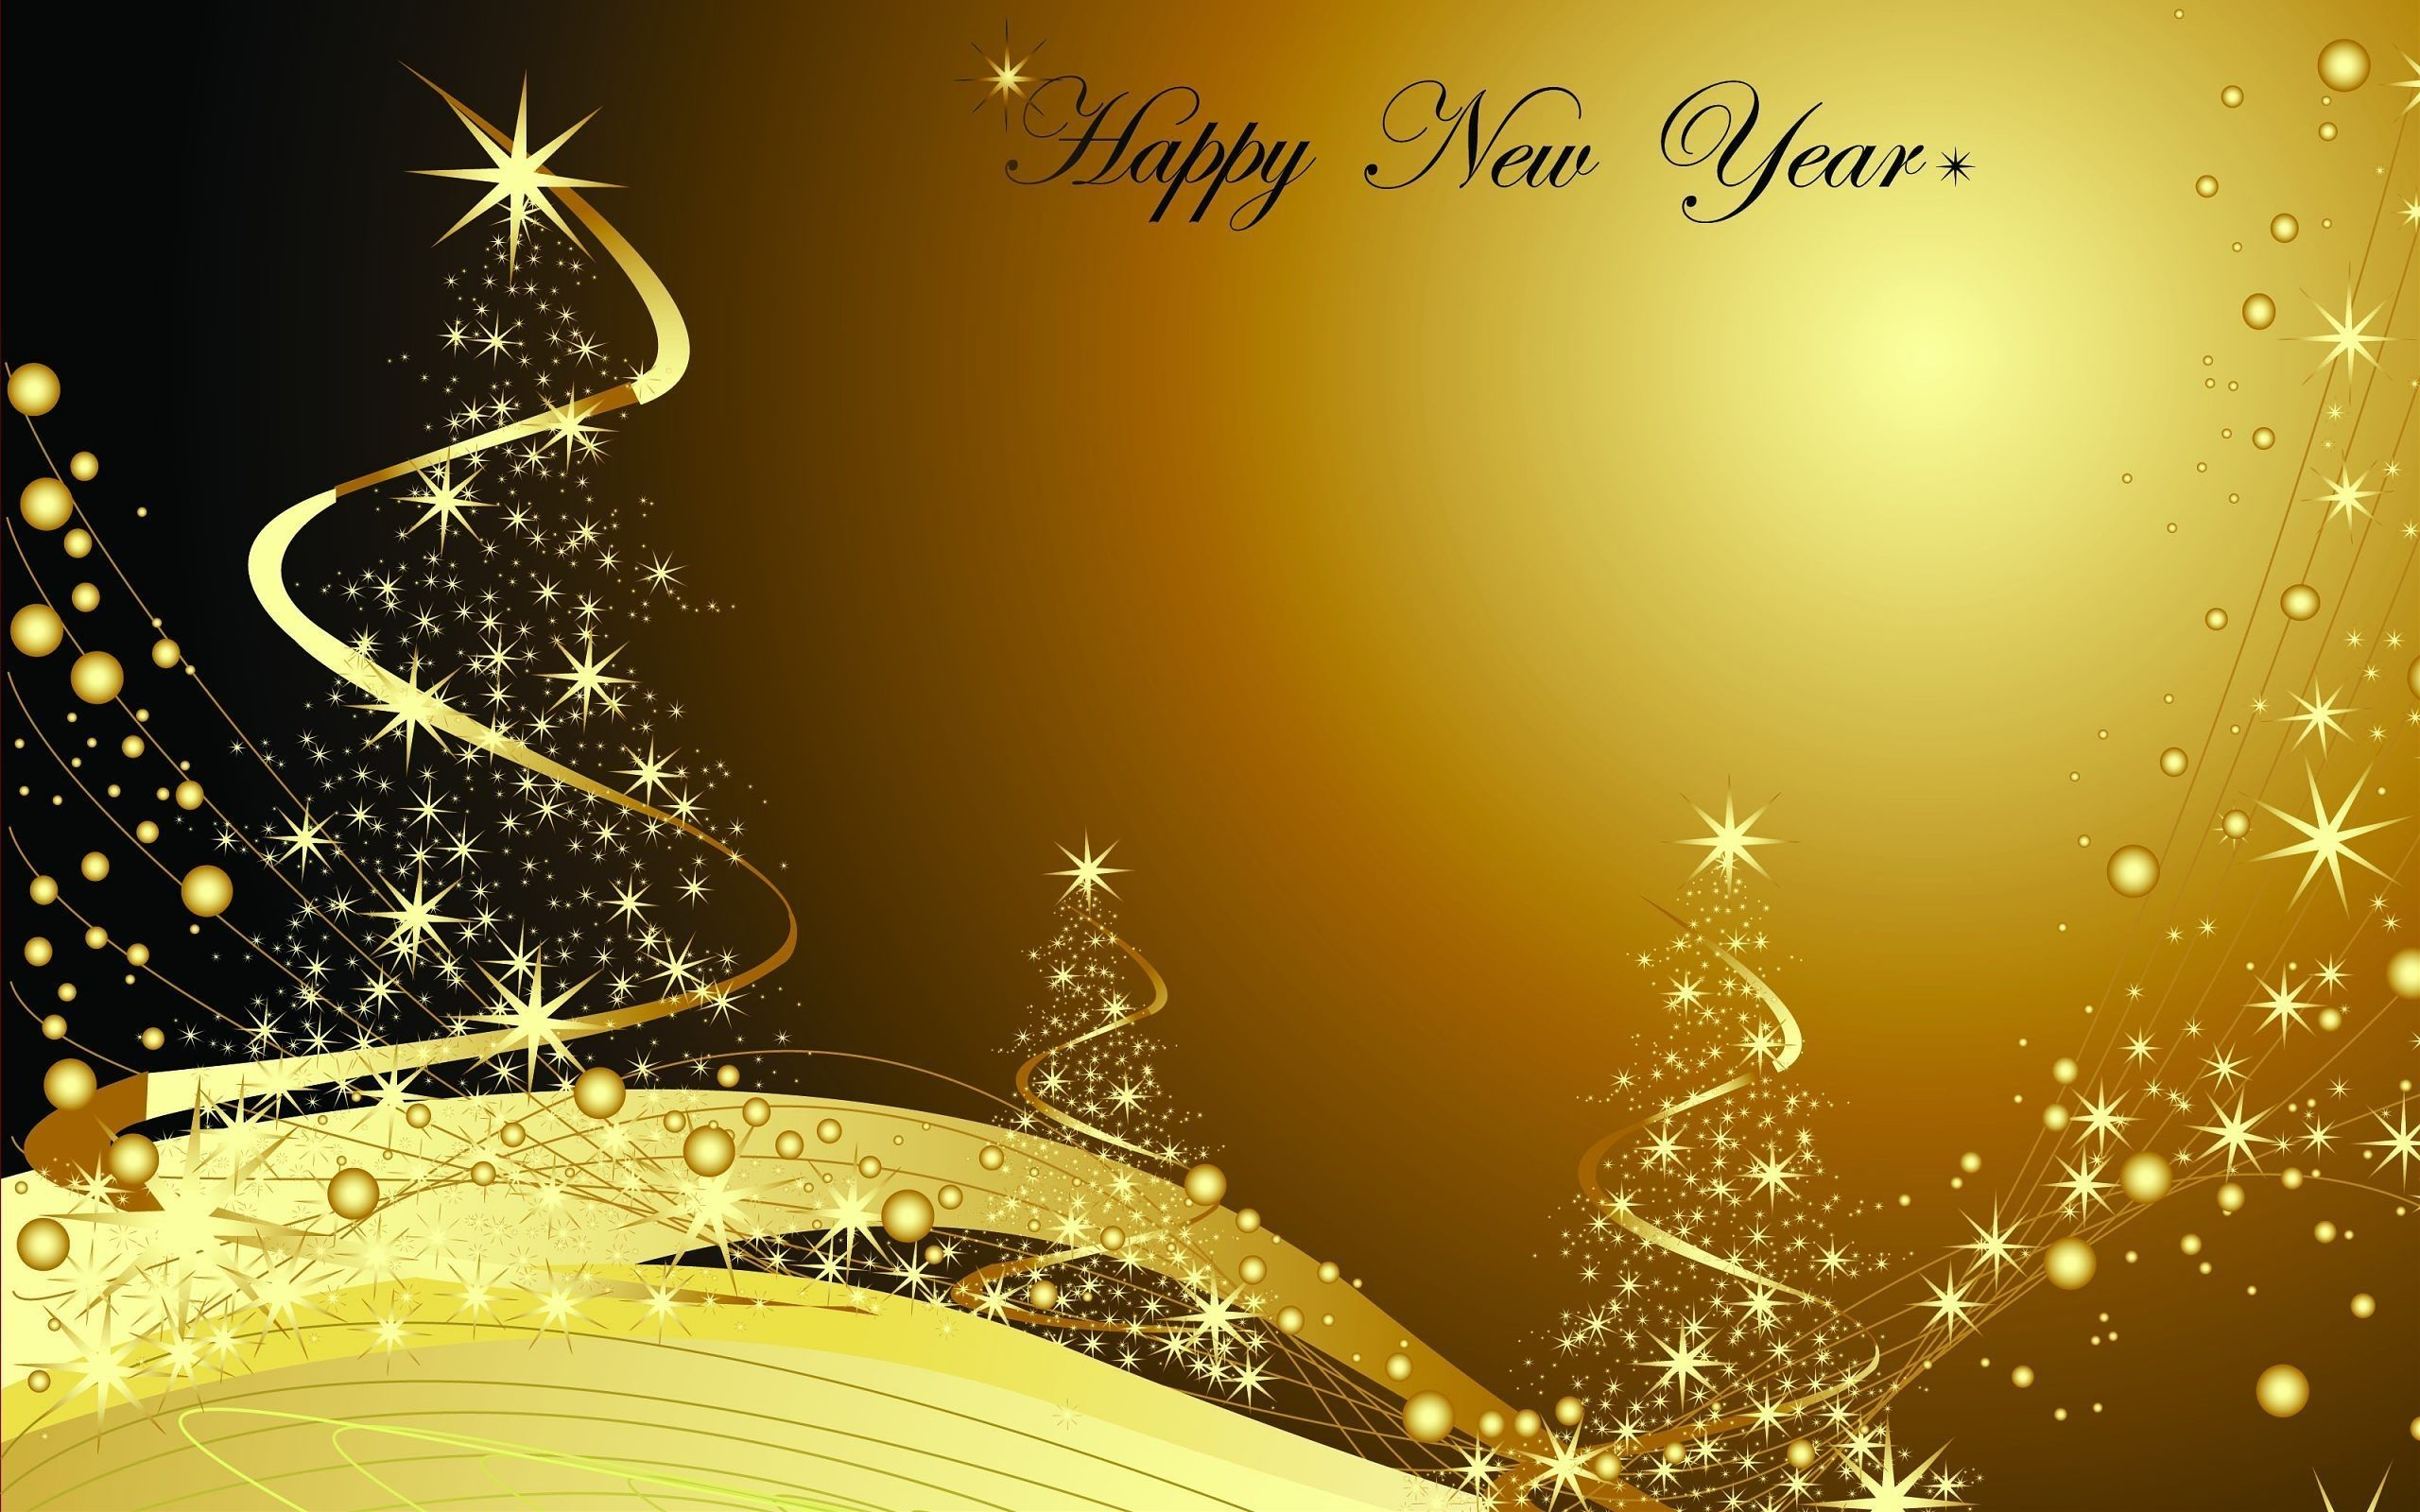 New year greeting cards clipart clip art royalty free download happy new year 2016 hindi sms shayari messages wishes images ... clip art royalty free download